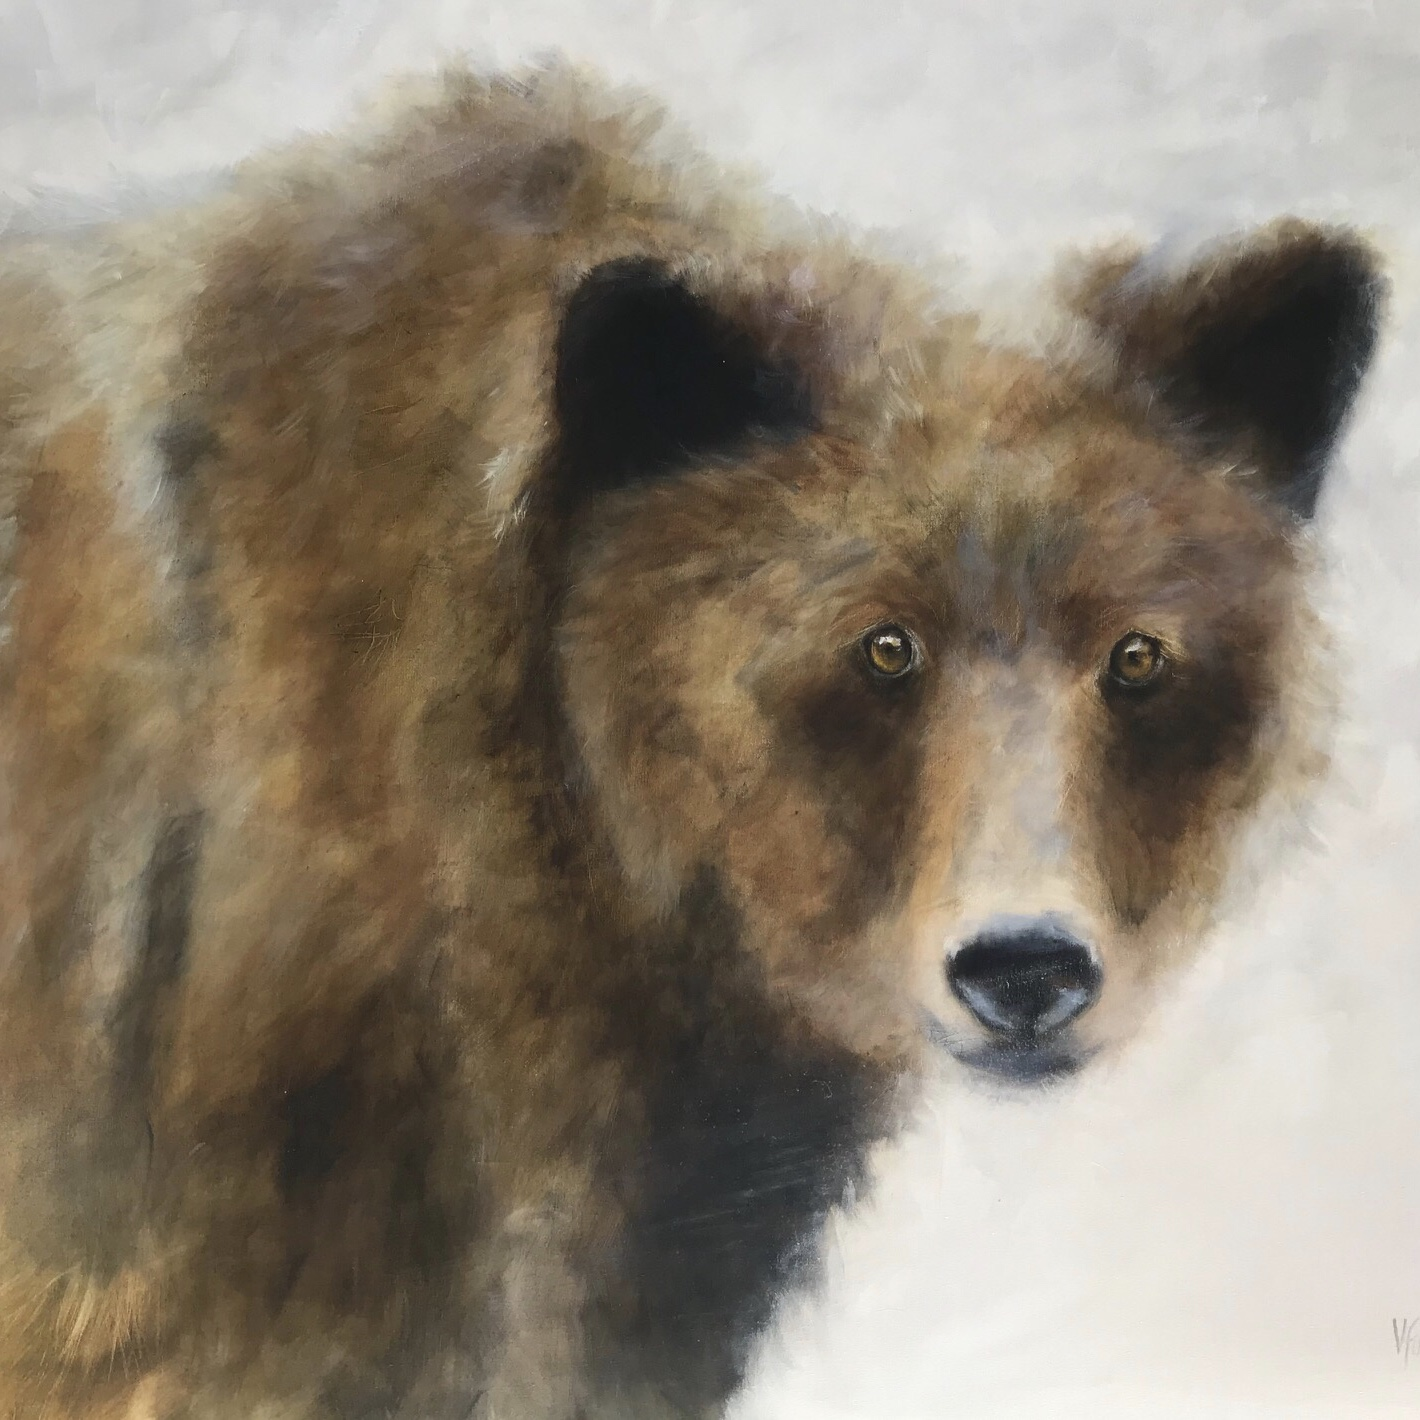 Callaghan Grizzly 36 x 48 Sold